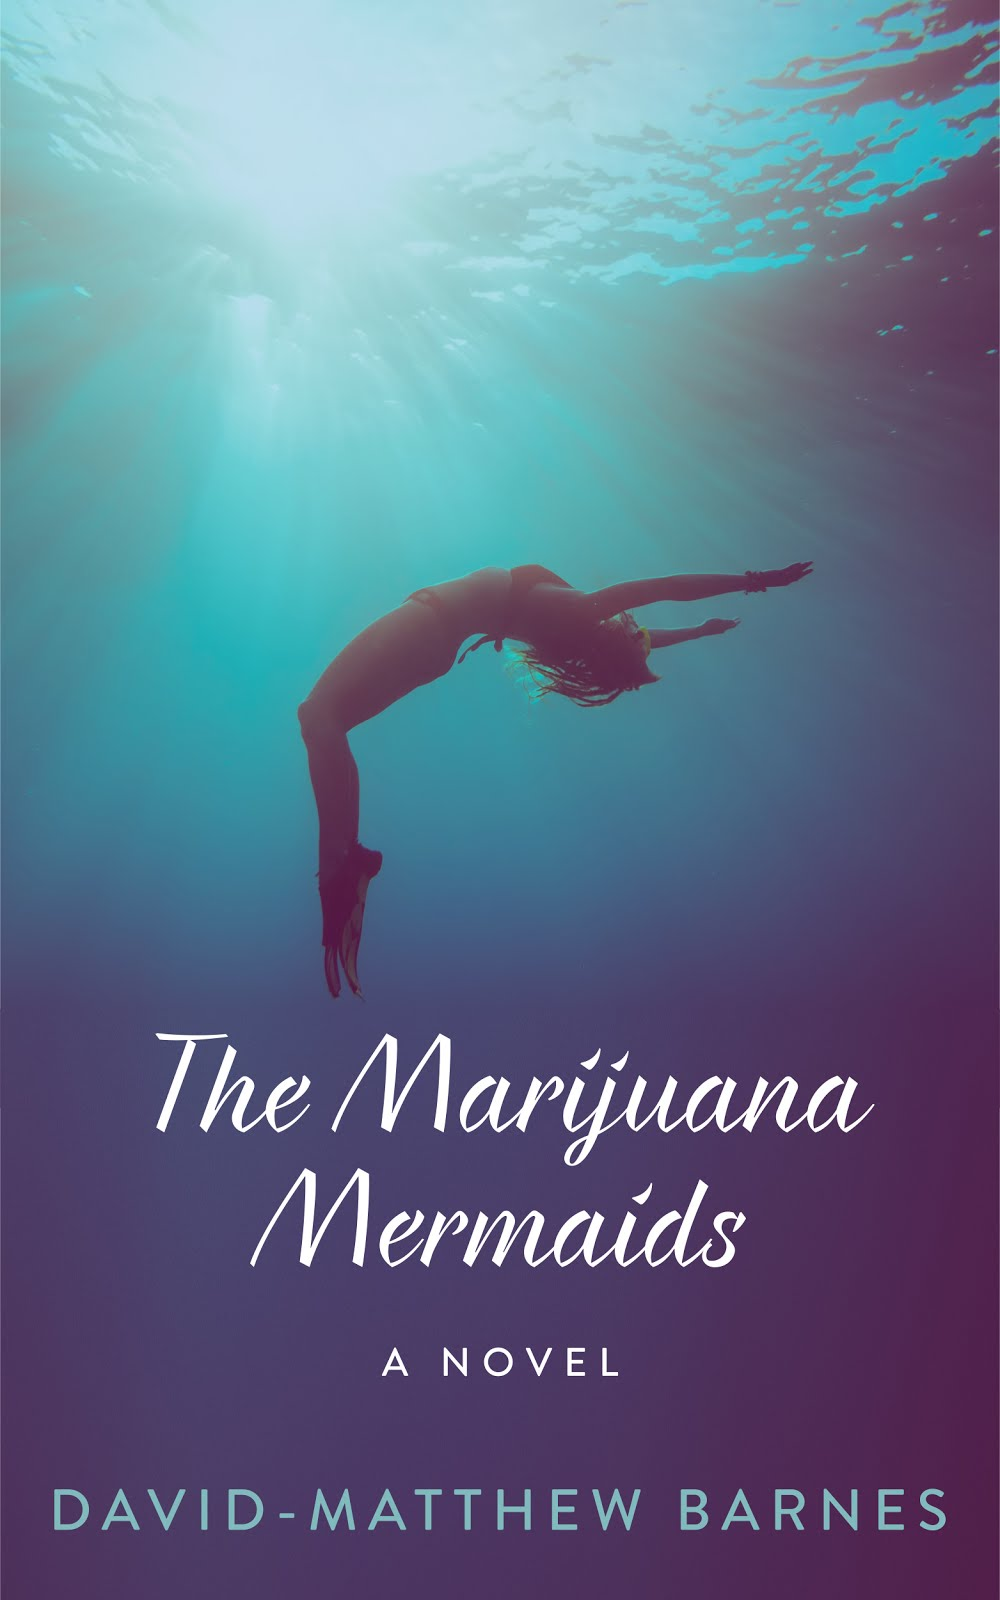 THE MARIJUANA MERMAIDS - FREE READ!